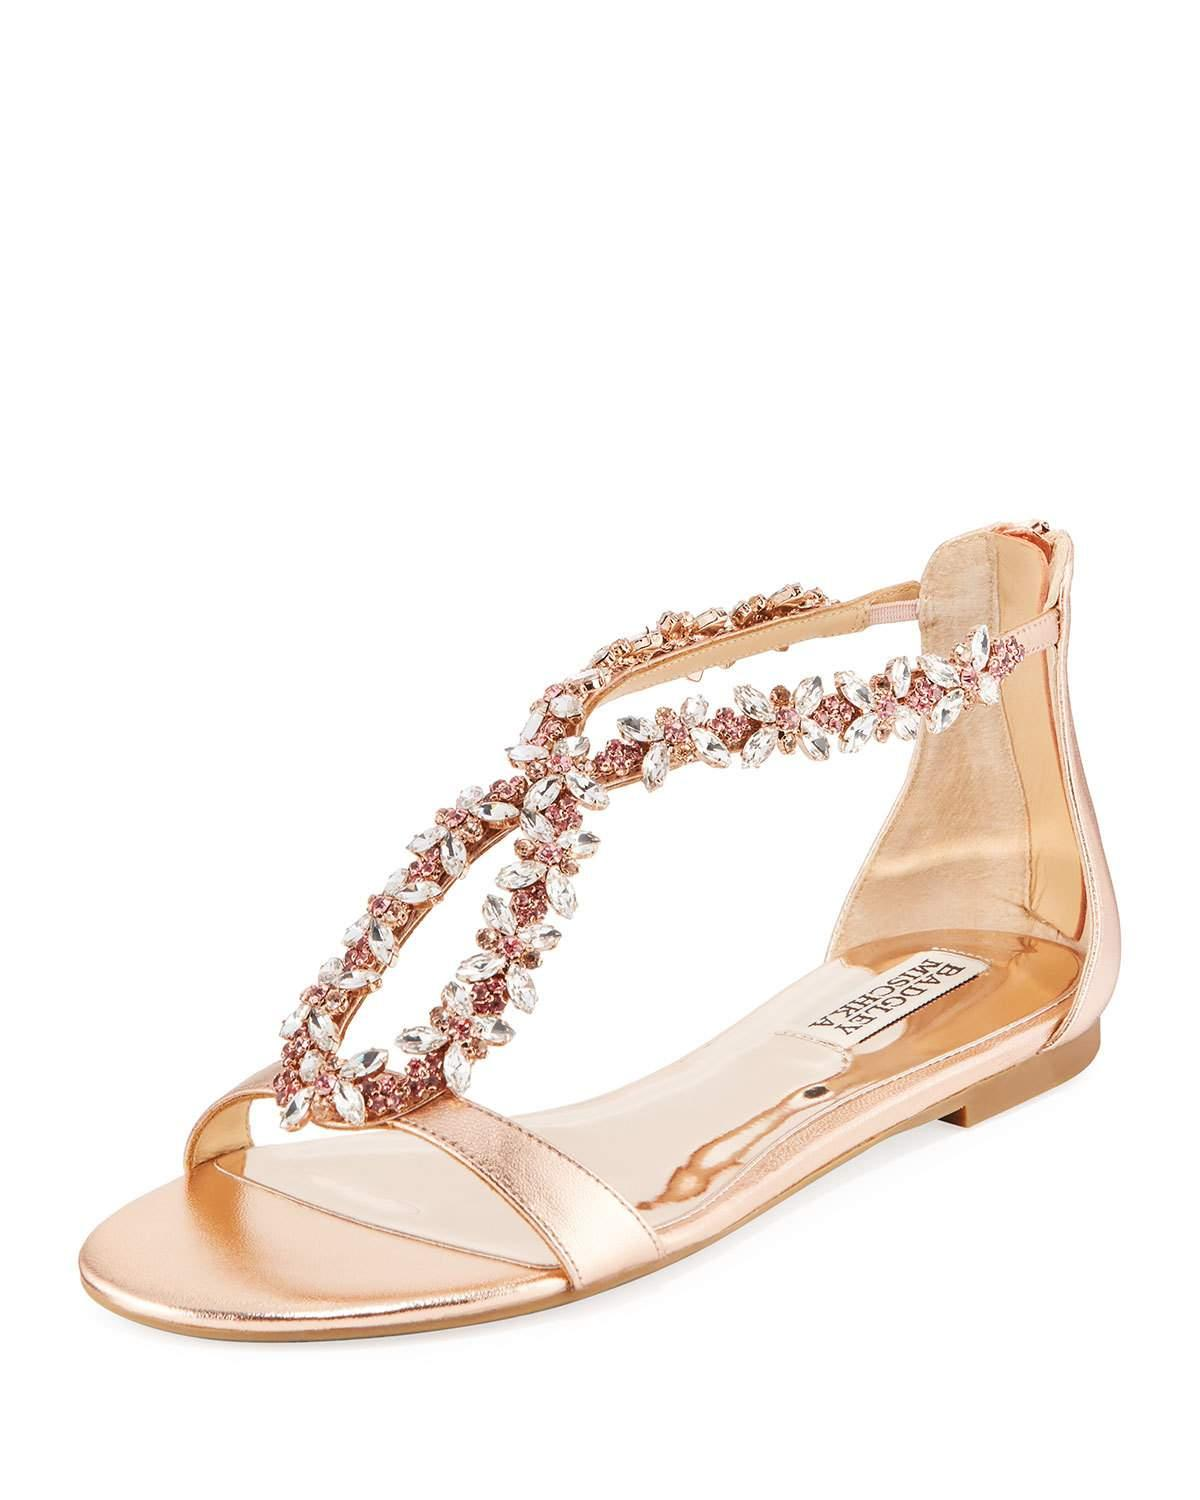 95dc456207e93d Badgley Mischka Haynes Jeweled Flat Metallic Leather Sandal In Rose ...